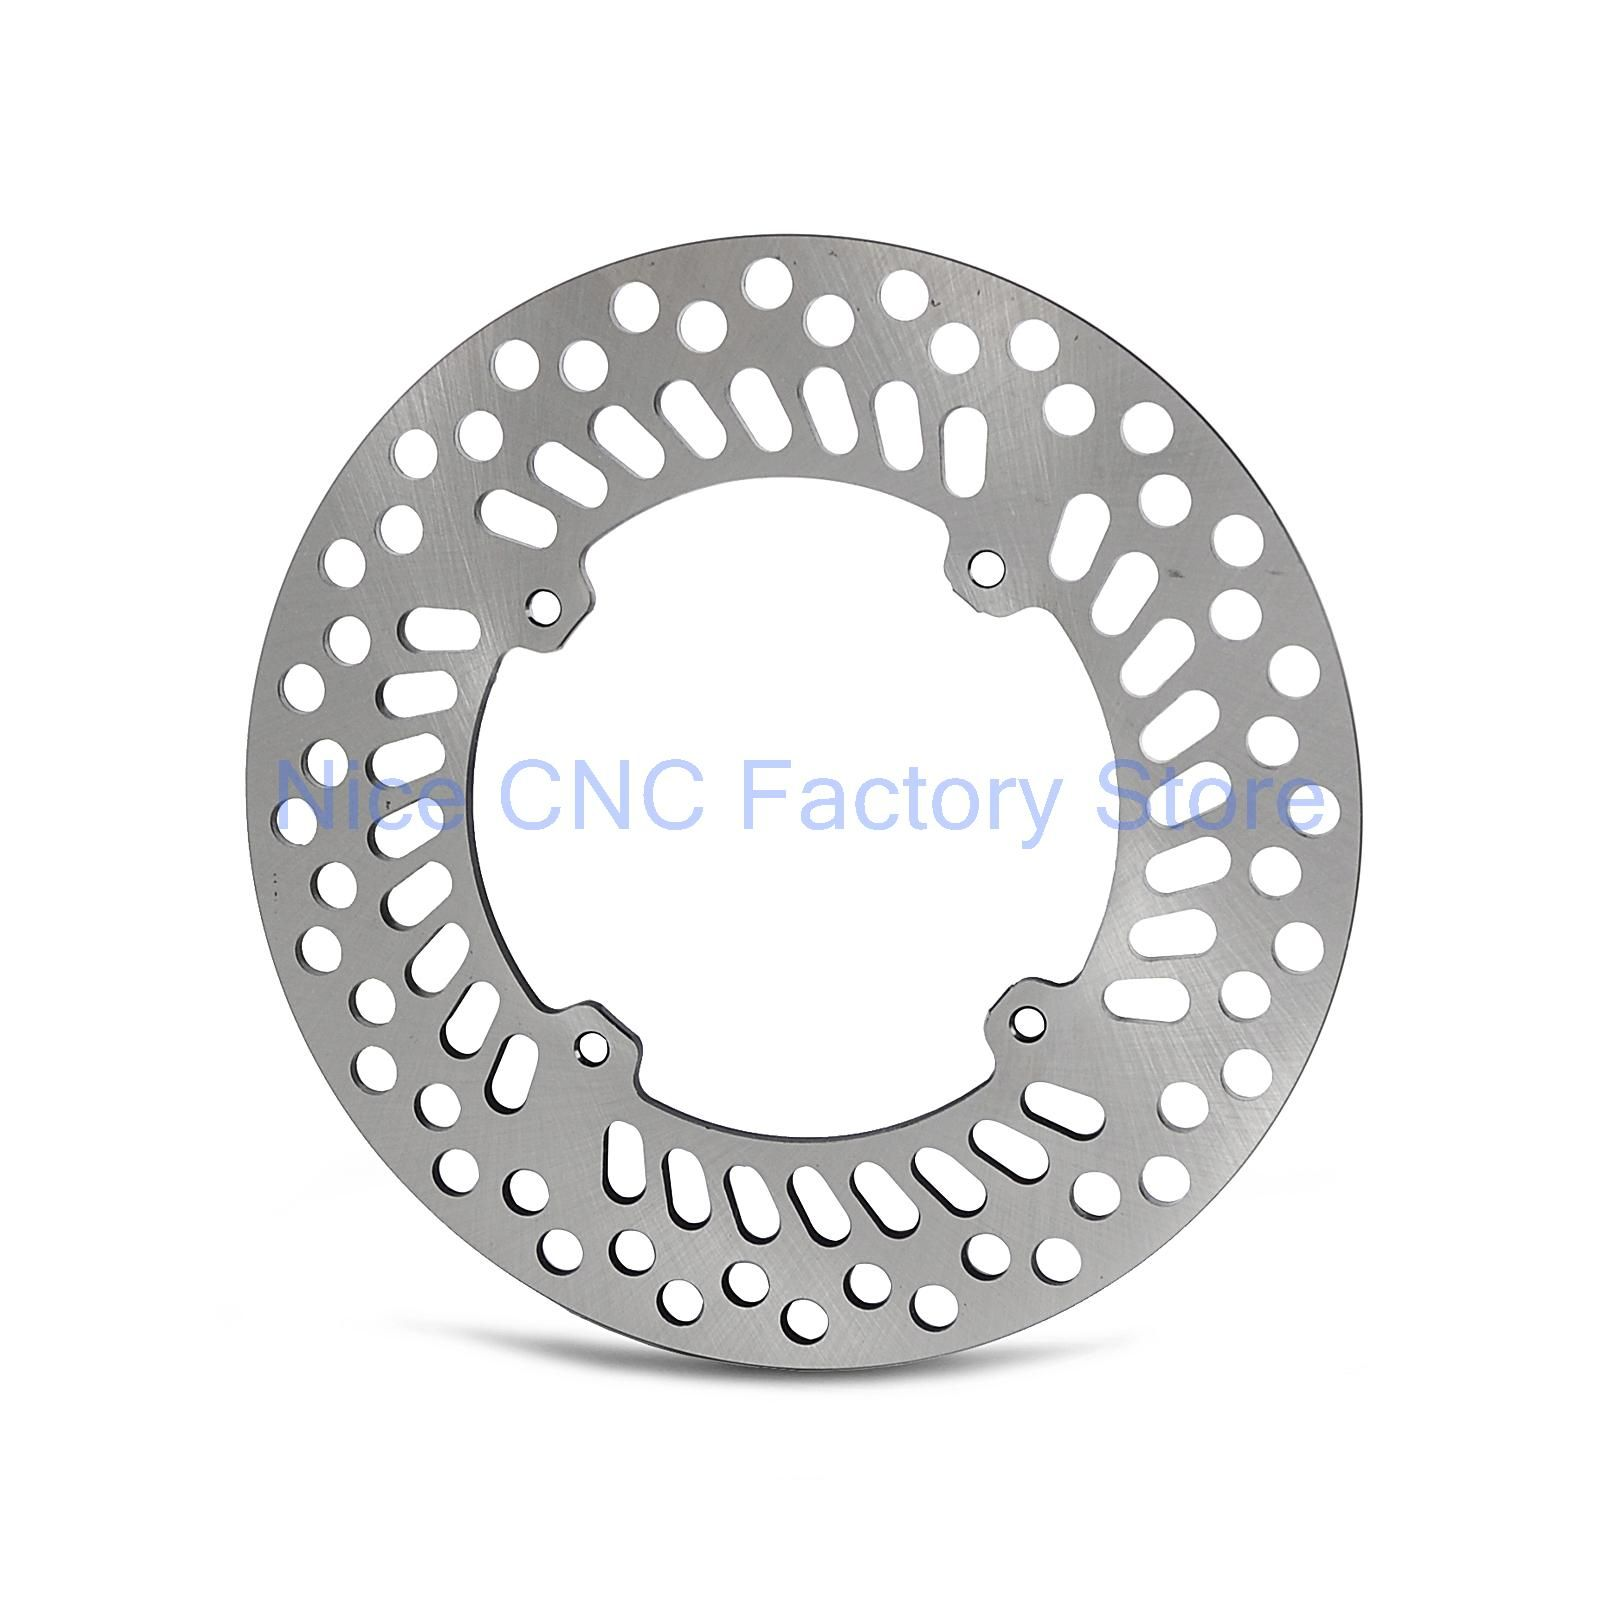 Motorcycle Front Rotor Brake Disc For Honda CR125 MTX125 XL125 MTX200 CR250 CR500 XR250 XR350 XR600 CRM250 XL600 XLR250R